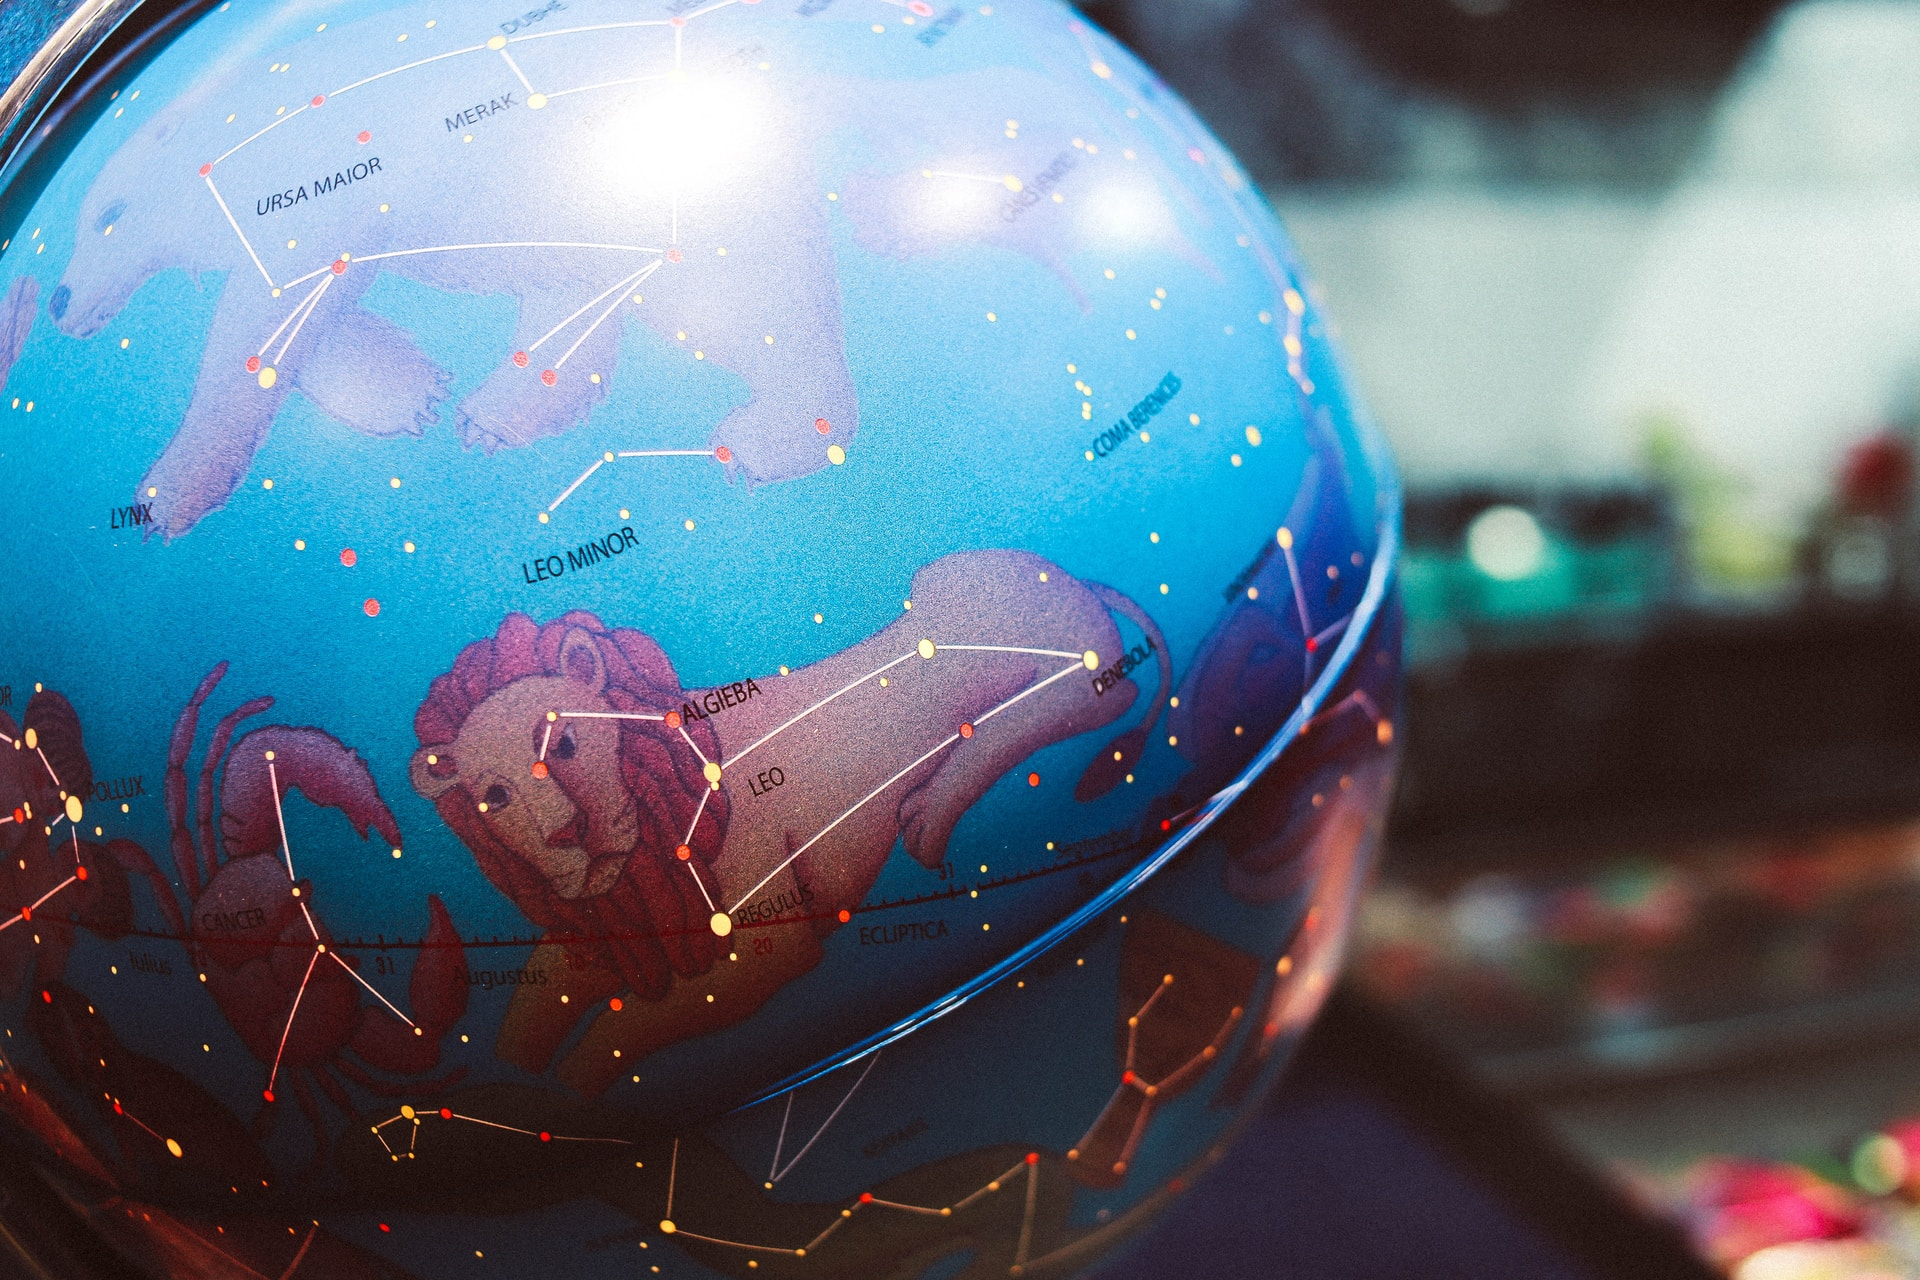 horoscope globe